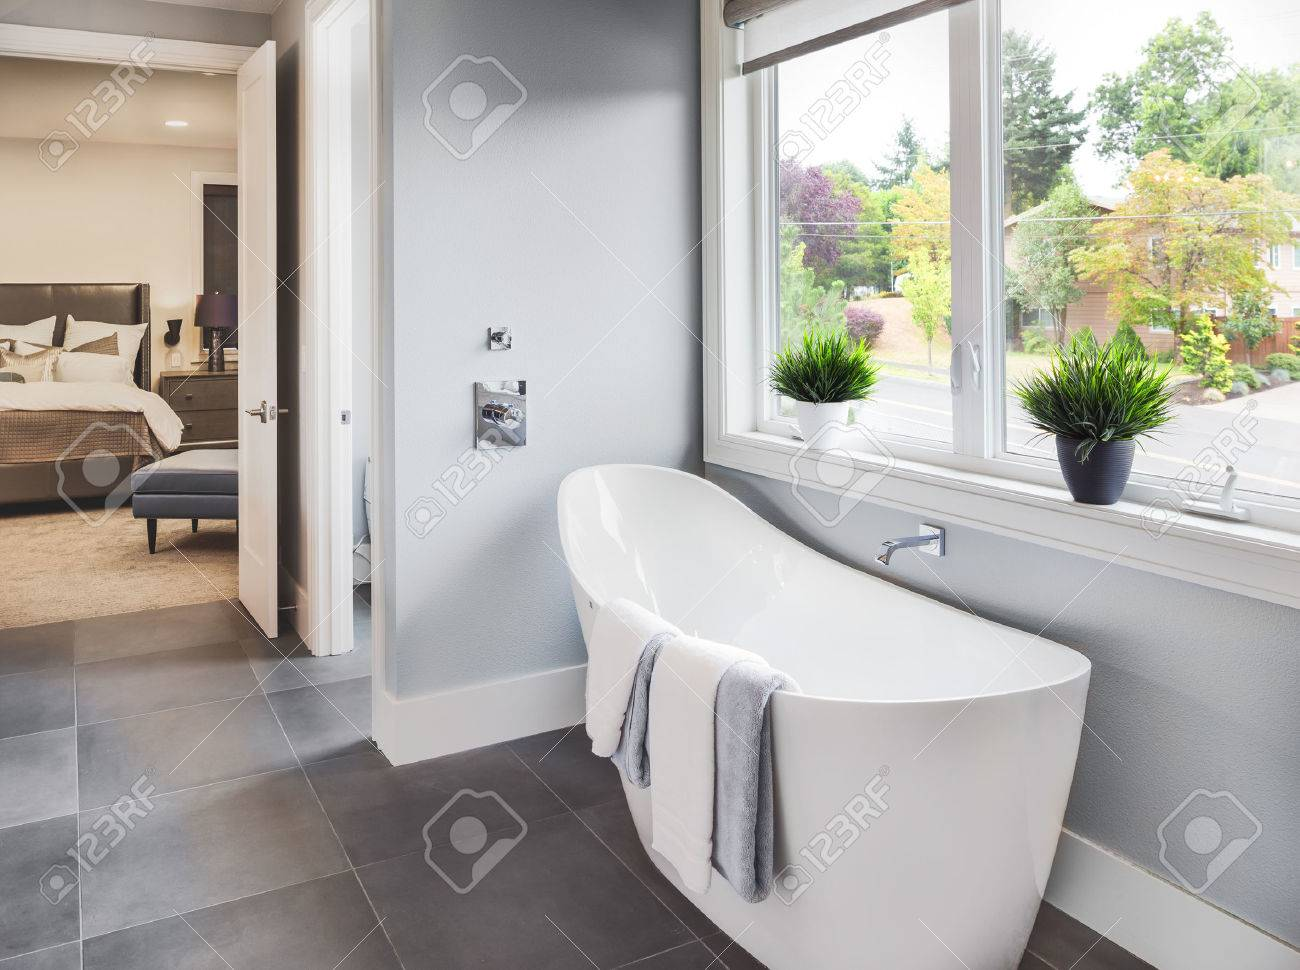 Bathtub In Master Bathroom In New Luxury Home With View Of Master Bedroom  And Neighborhood With